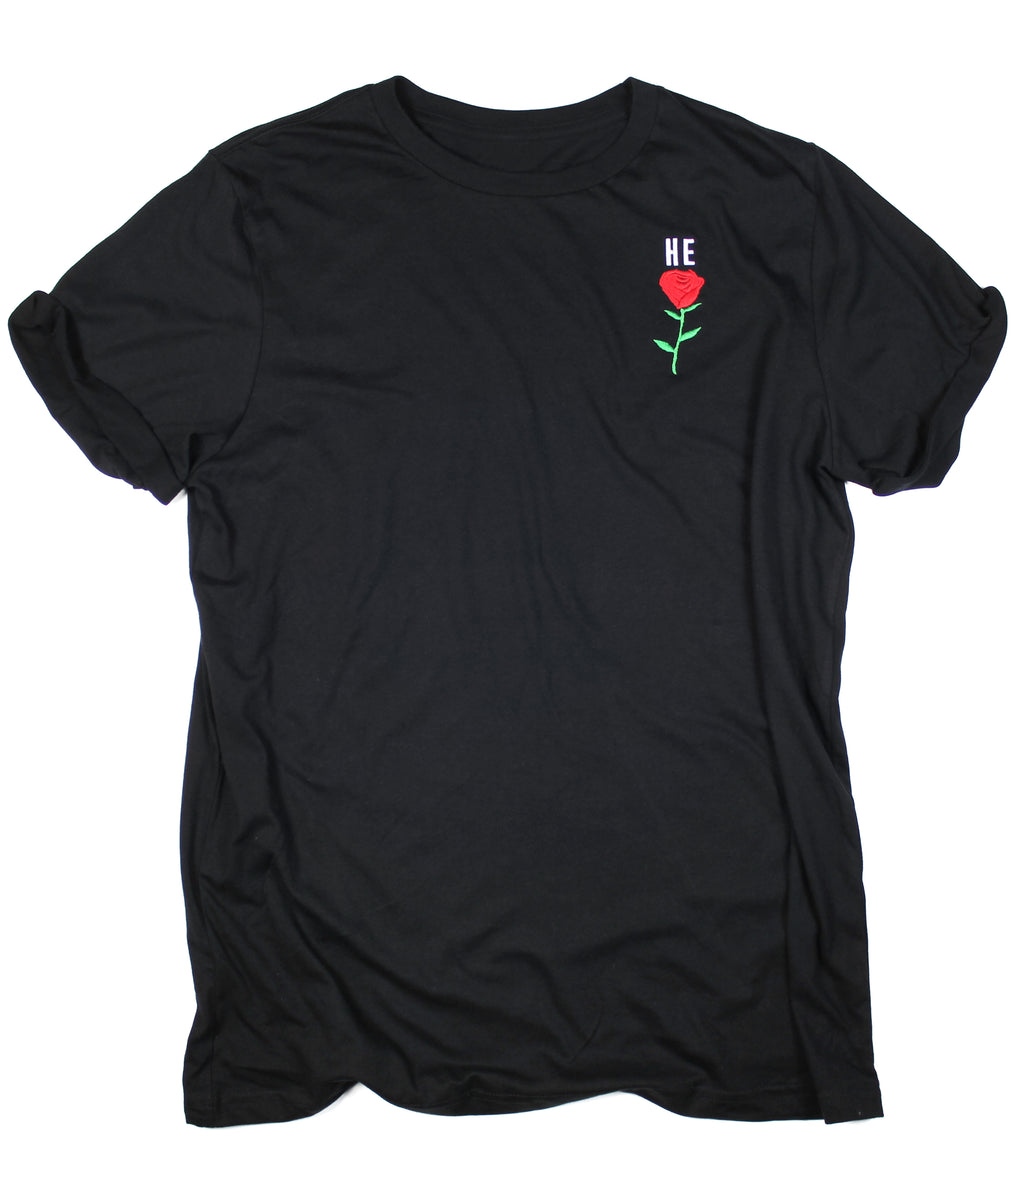 HE ROSE EMBROIDERED BLACK ROLLED SLEEVE T-SHIRT